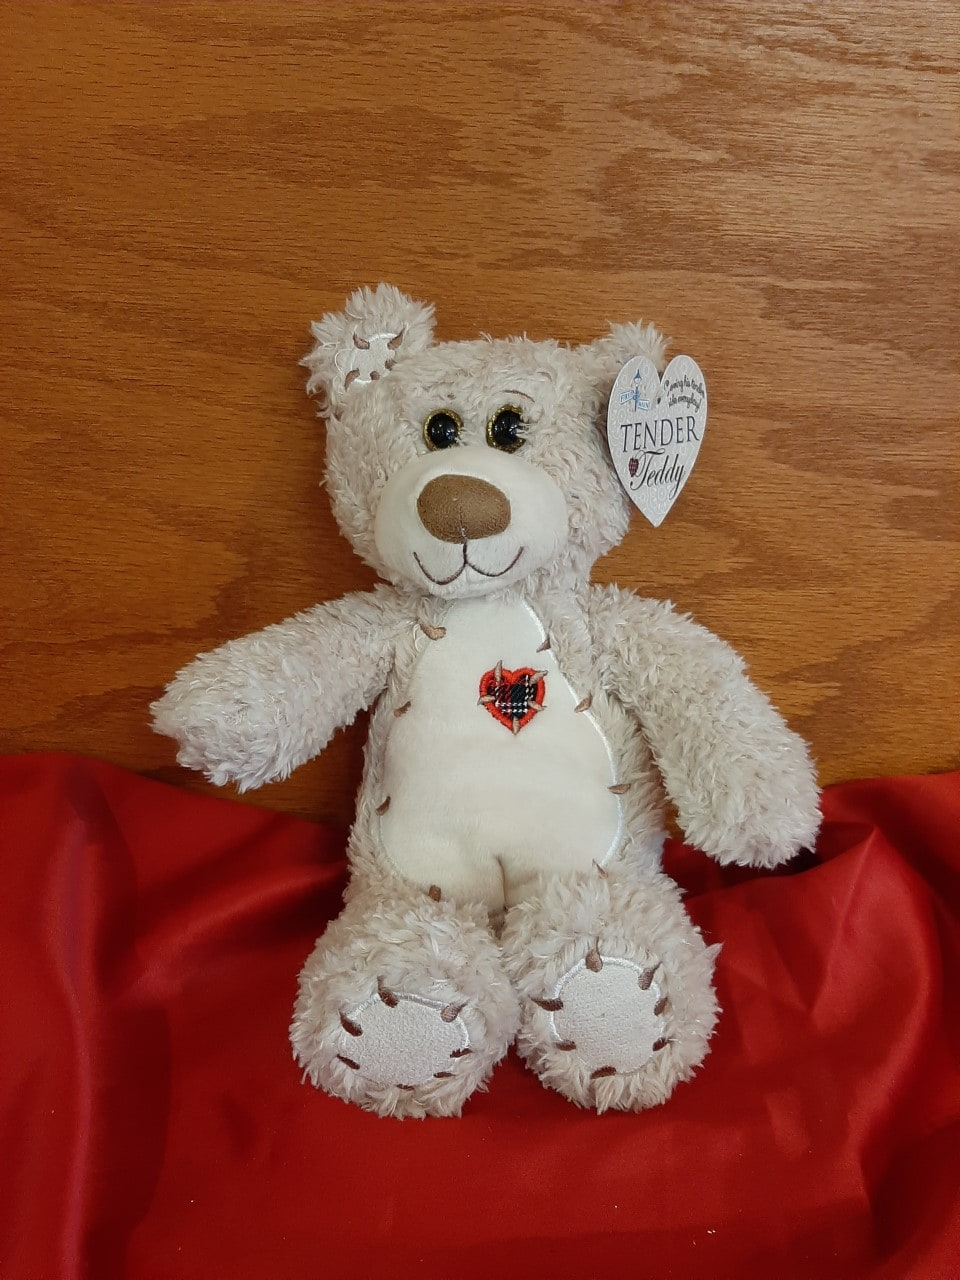 Stuffed Animal - Bear, Tender Teddy